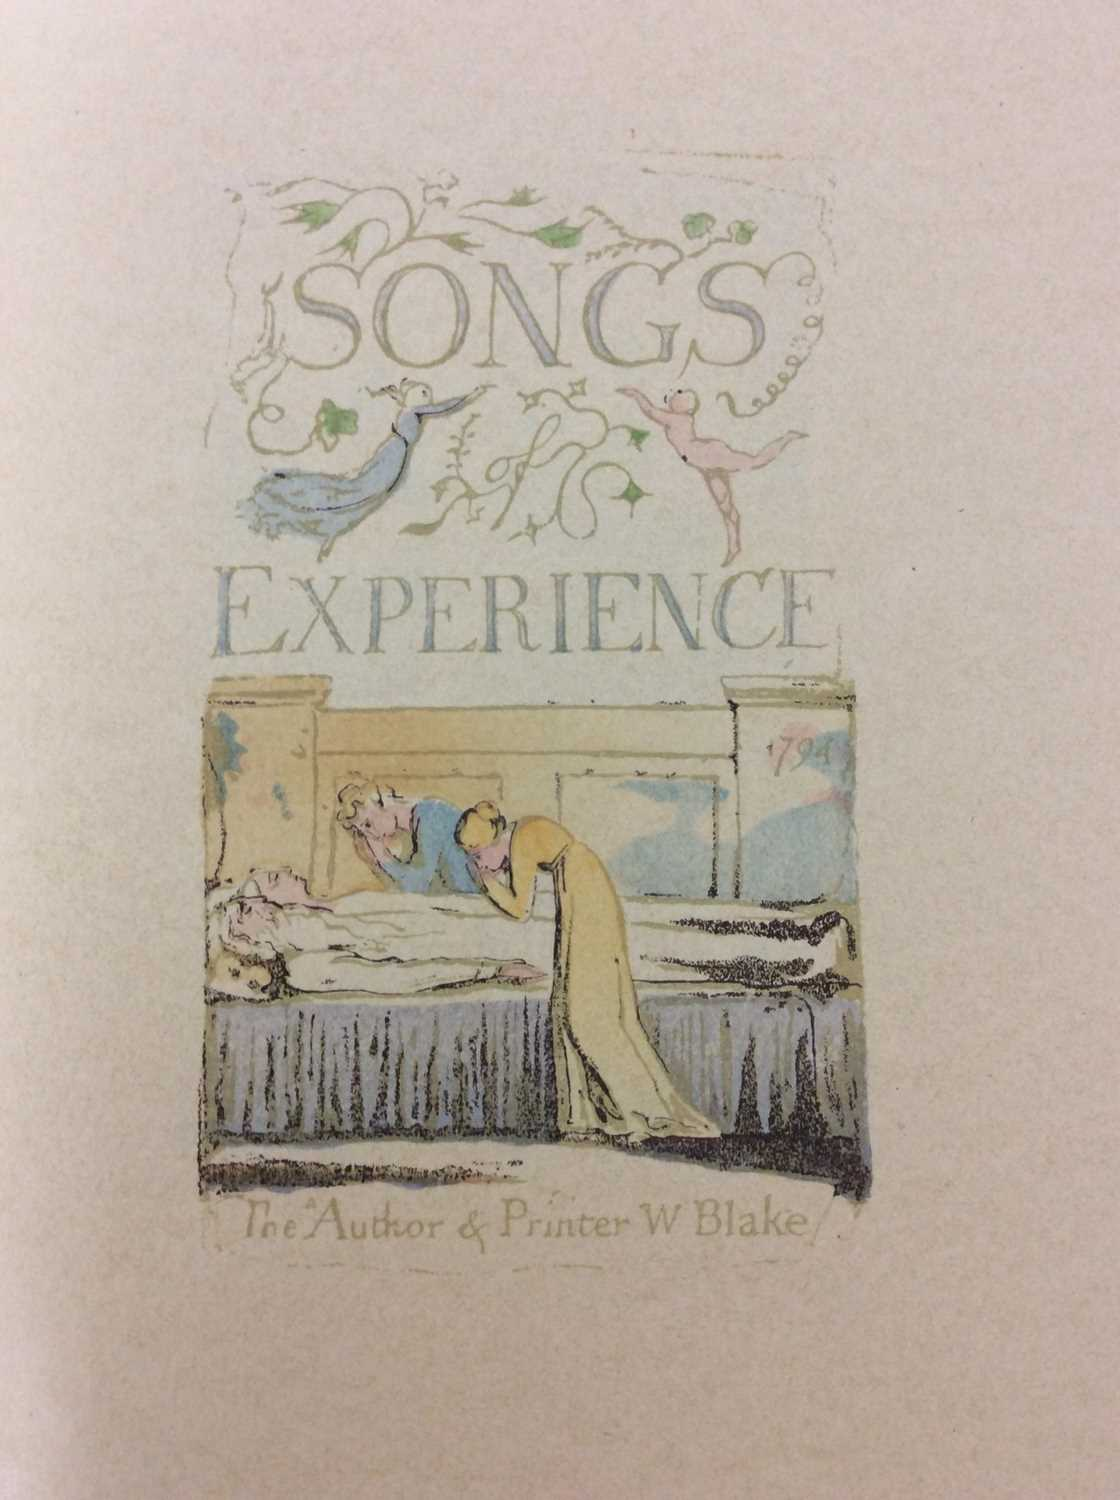 William Blake - Songs of Experience, Songs of Innocence, together with Mr Kilburn's Calicos - Image 3 of 15